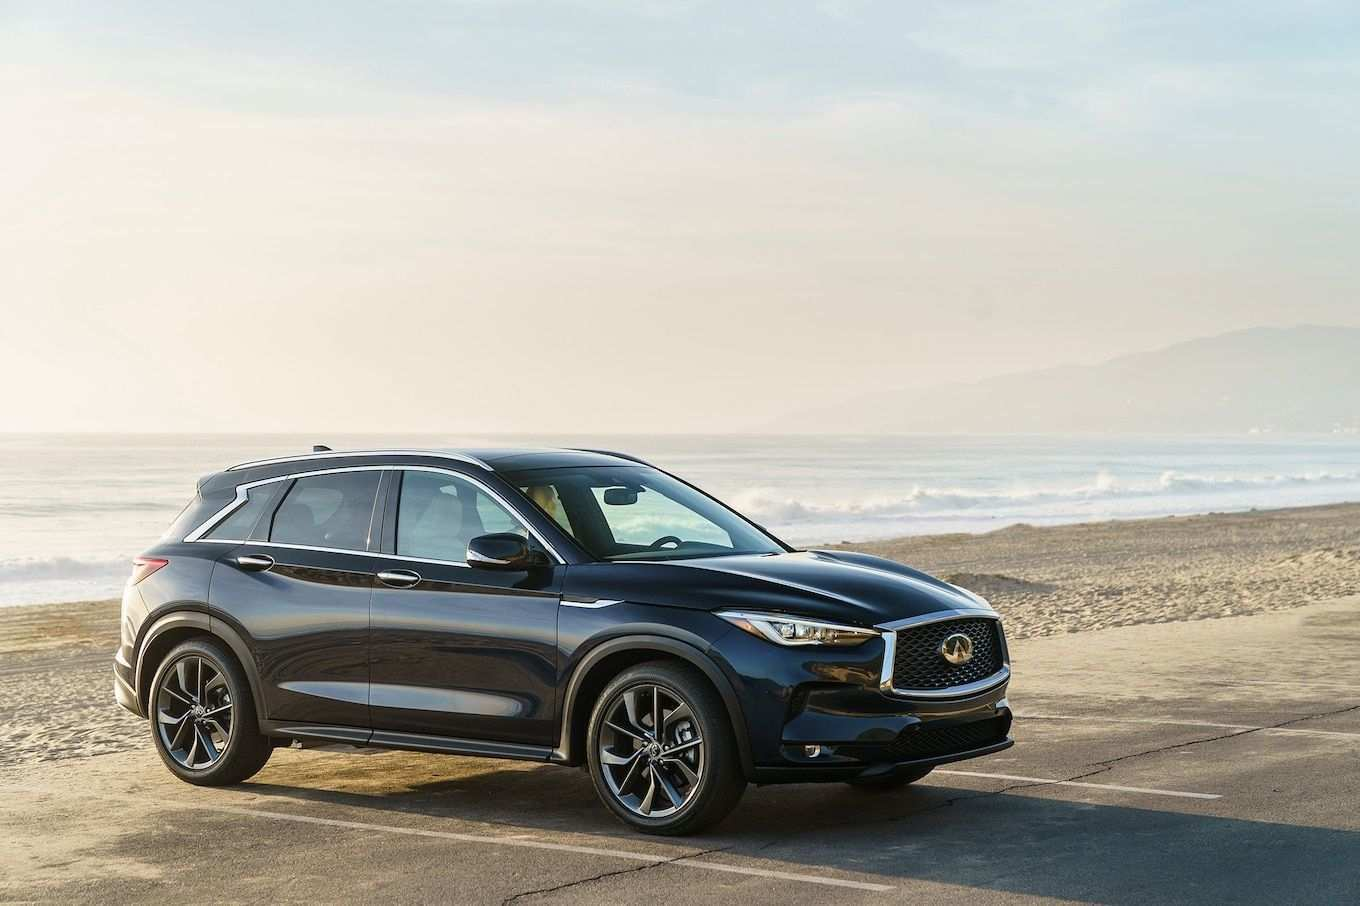 98 The 2019 Infiniti Qx50 Engine Specs Research New